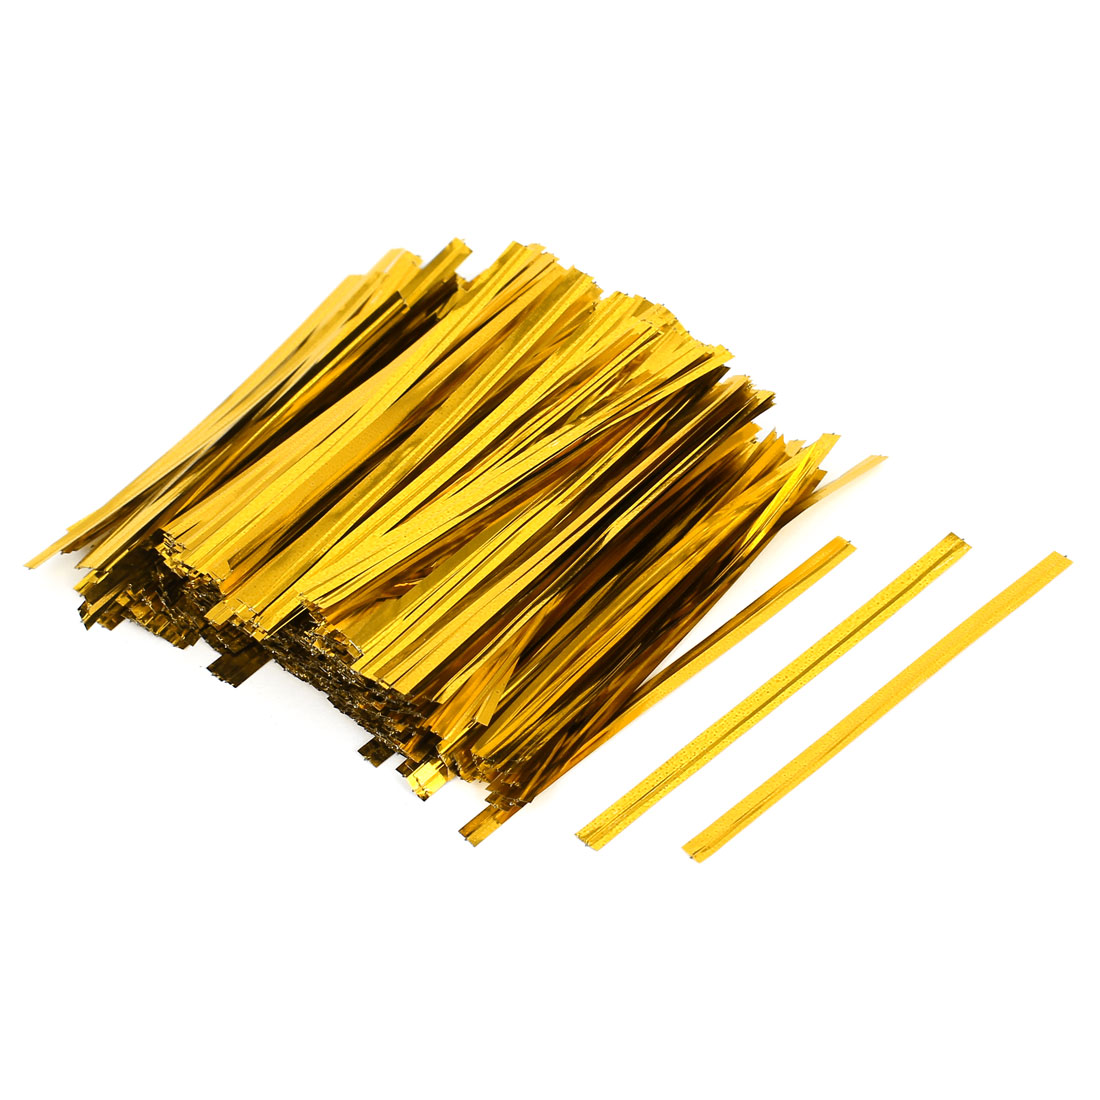 1600 Pcs Gold Tone 8cm Length Candy Bread Bags Packaging Twist Cable Tie